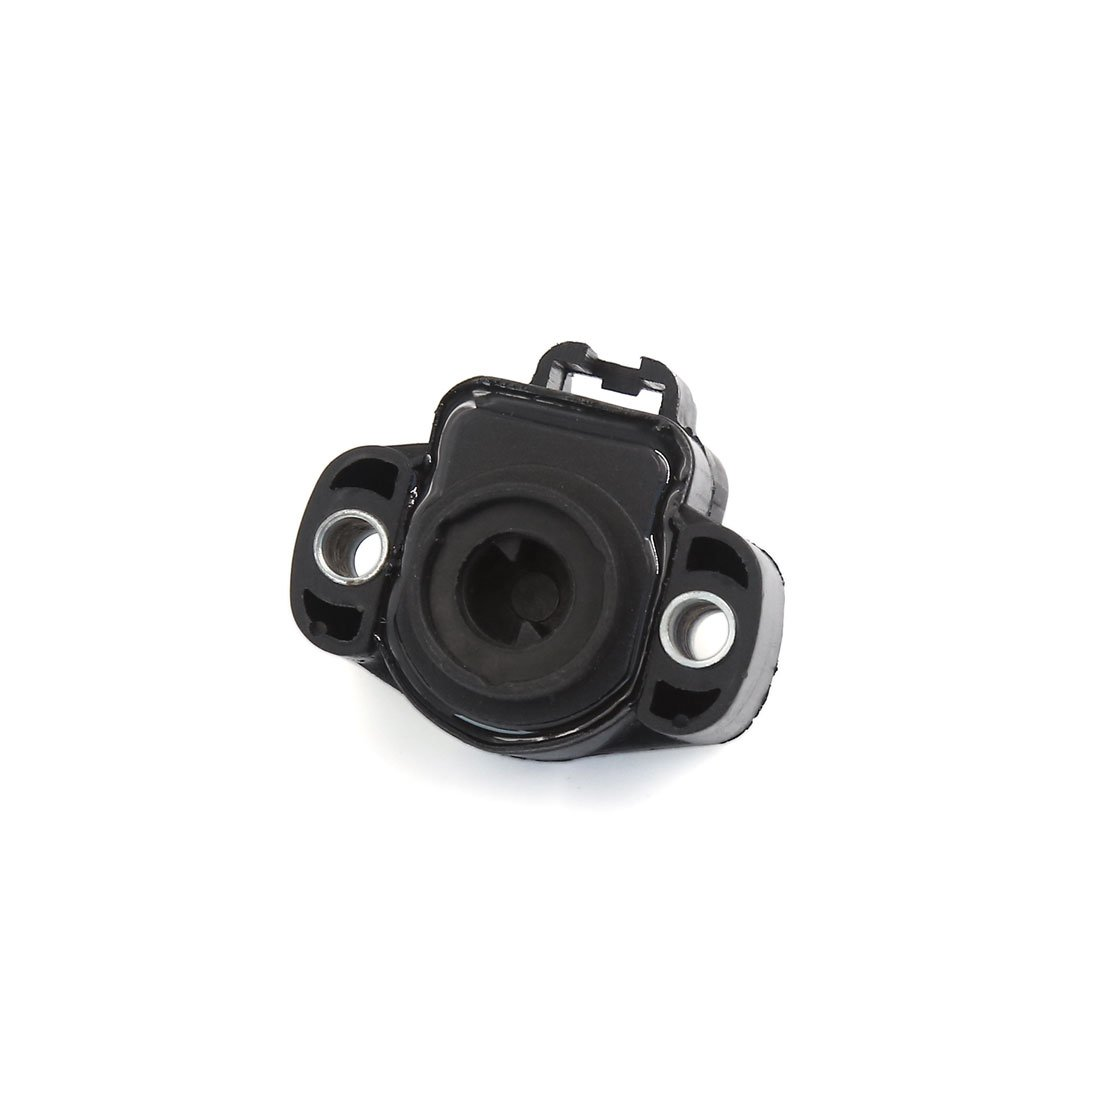 uxcell 4874371AB Throttle Position Sensor Replacement for Jeep Cherokee Dodge Dakota 1997-2002 a16112300ux0530